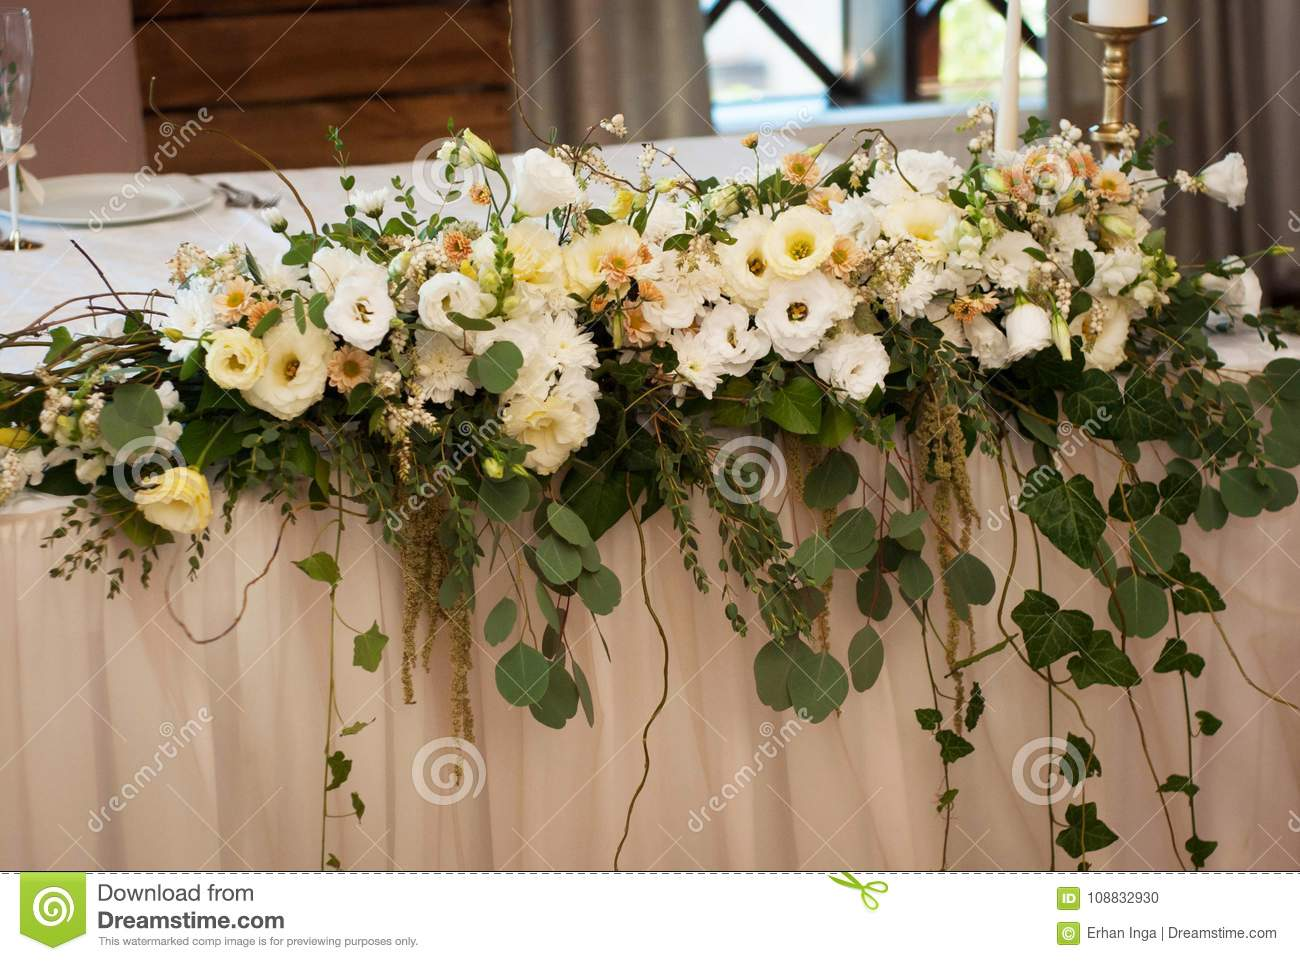 Big Flower Arrangement Or Composition On Wedding White Table Rustic Style Decor With Flowers Stock Photo Image Of Bride Botanical 108832930